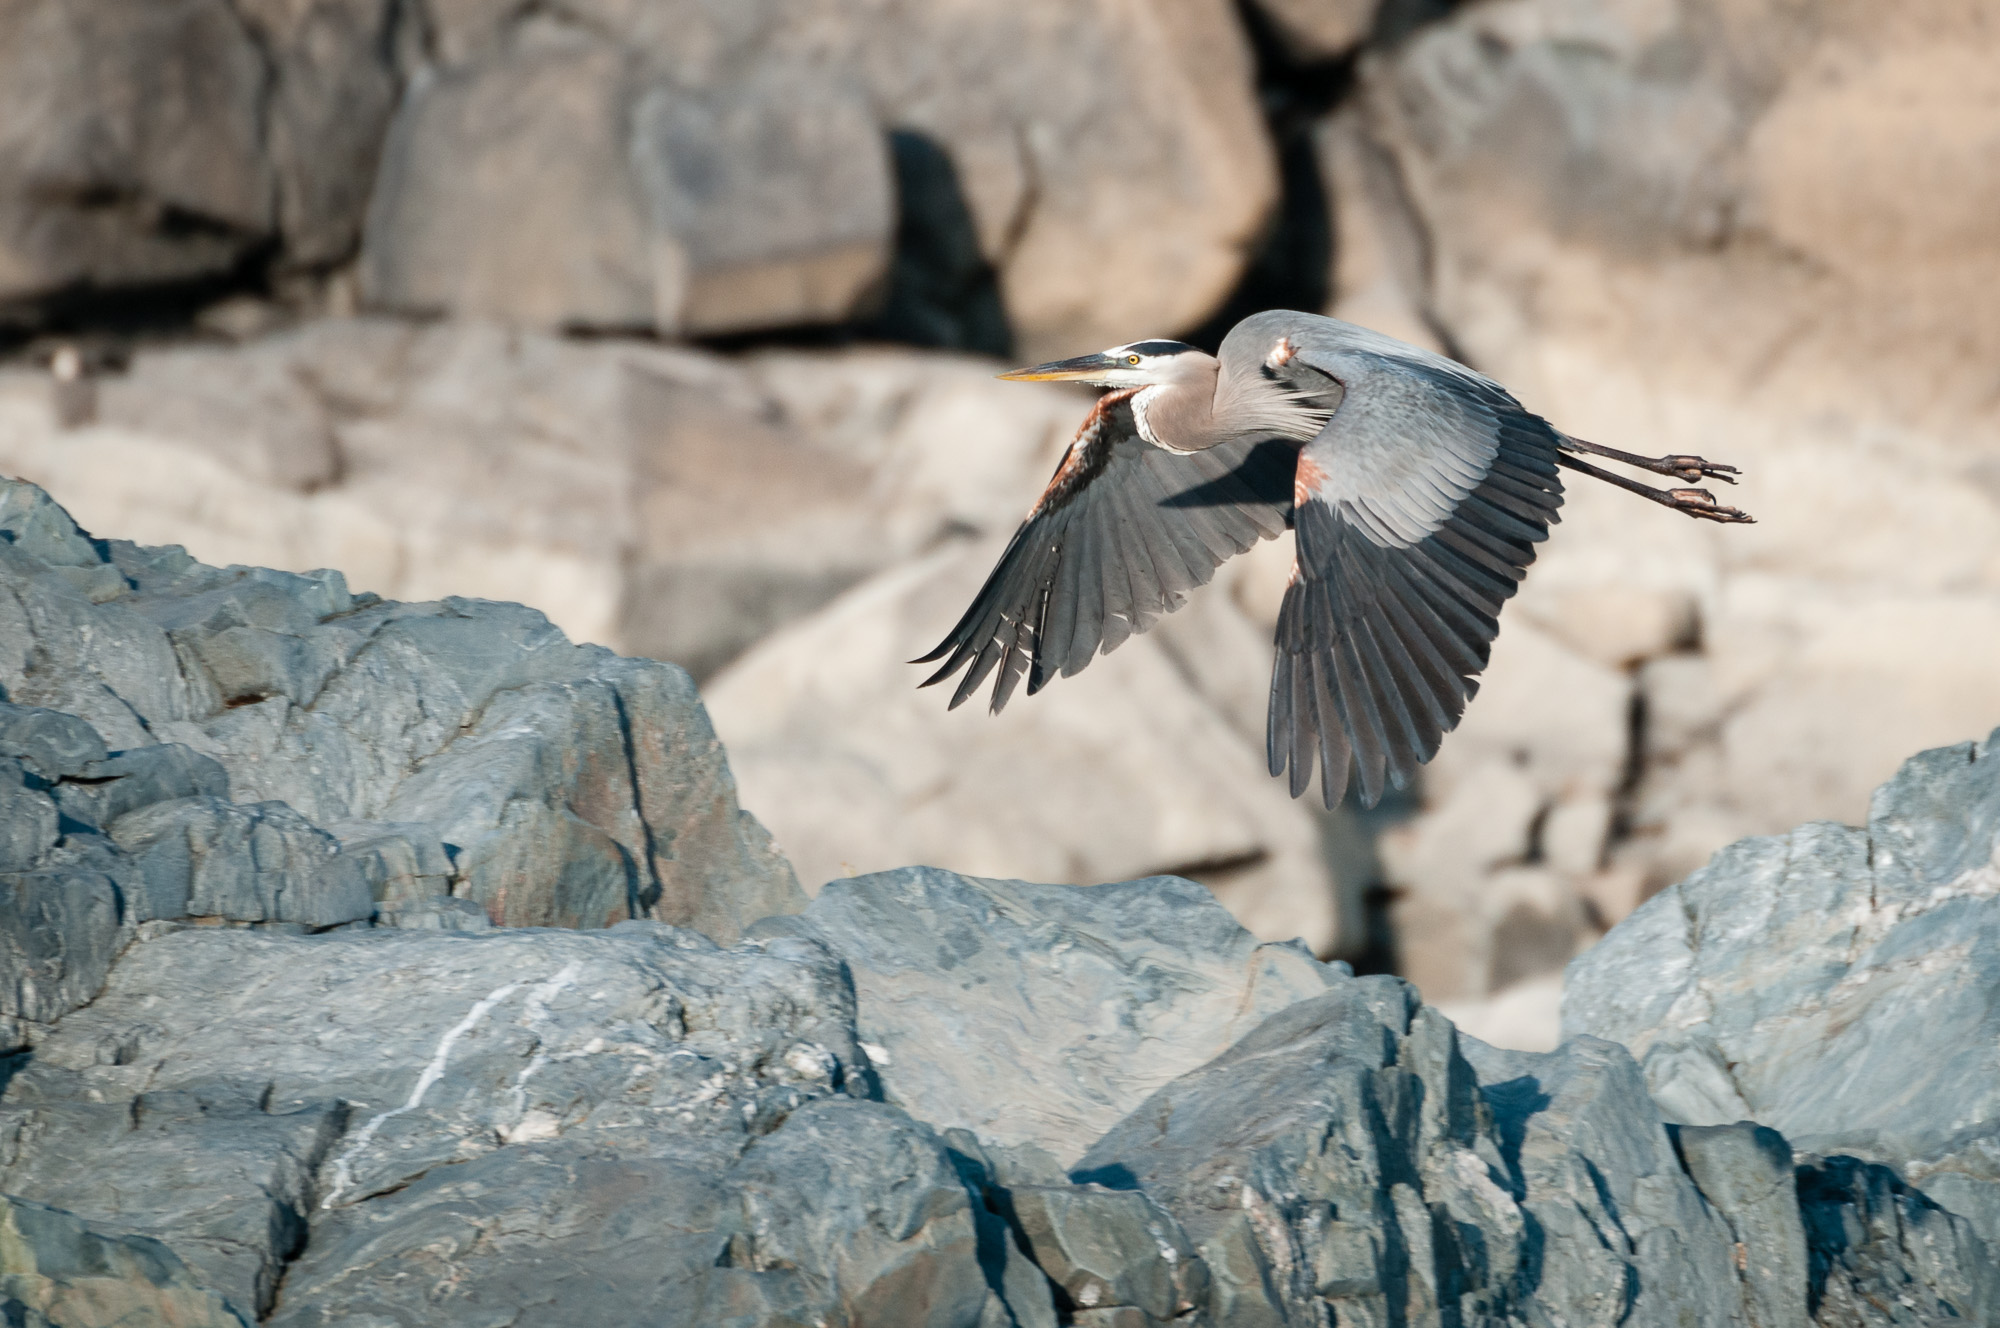 Great Blue Heron flying away from the scene of the crime.